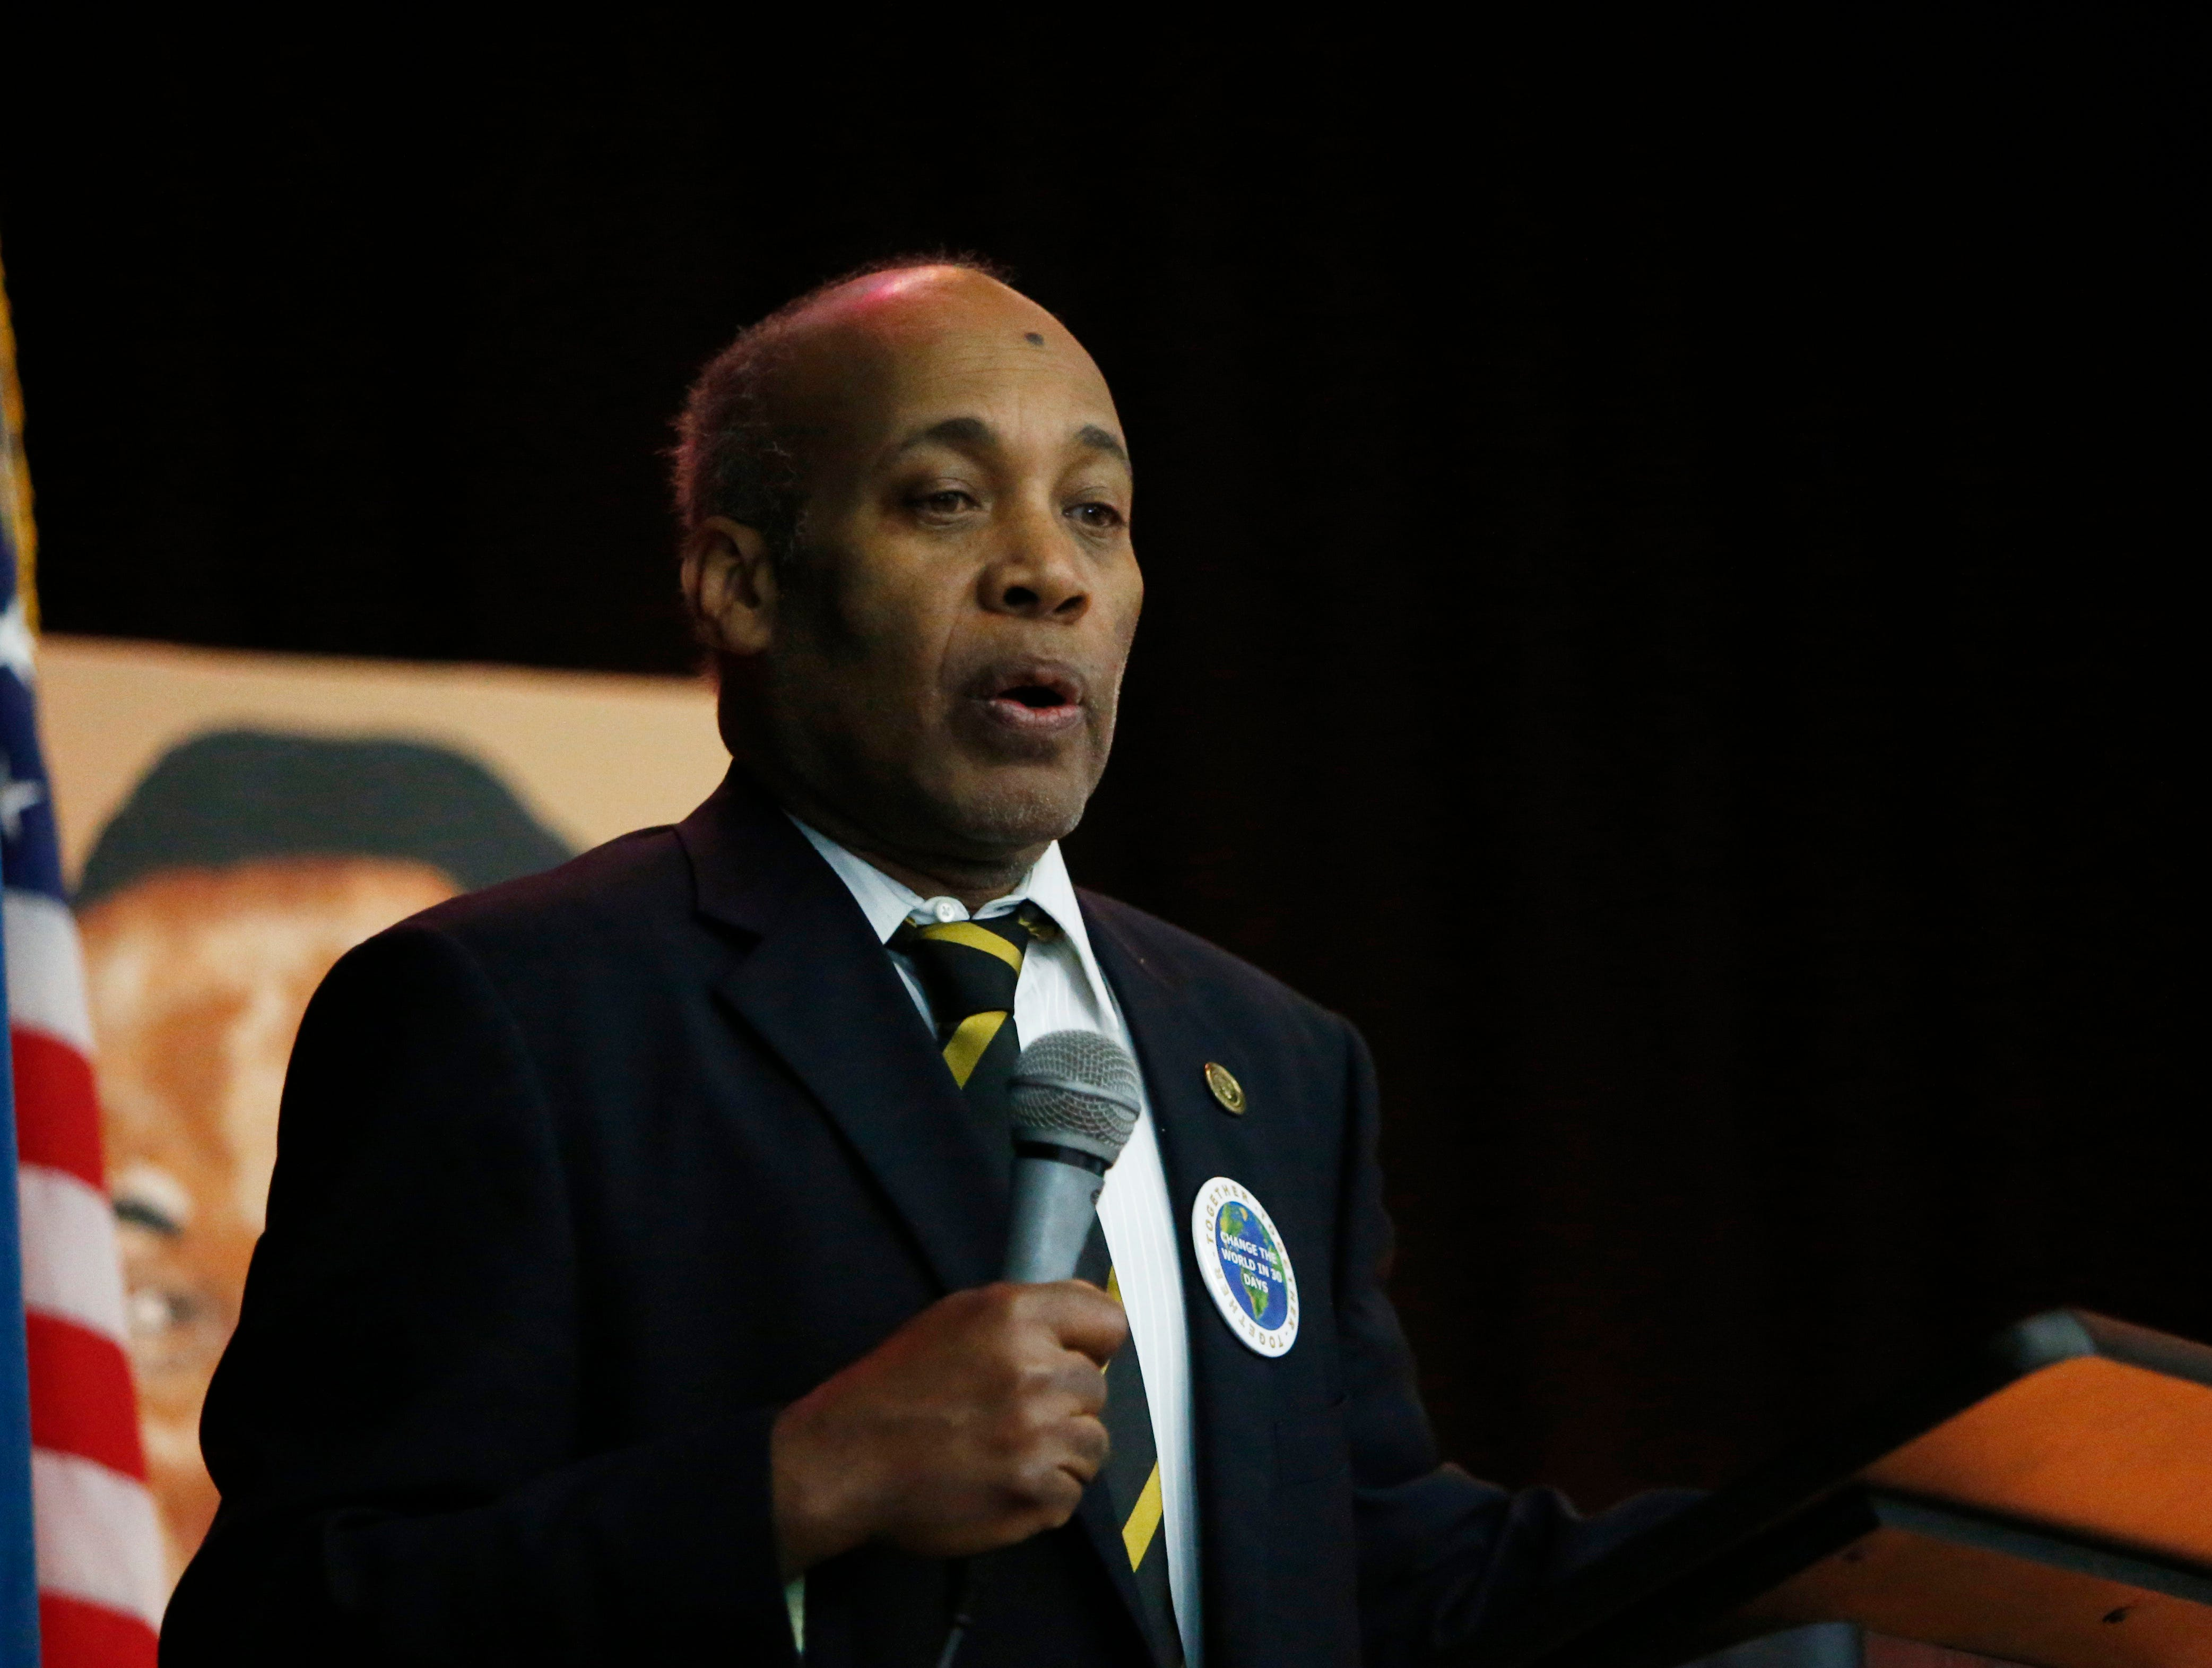 John Murphy, a representative from Alpha Phi Alpha Fraternity speaks during Thursday's Martin Luther King Celebration at Poughkeepsie High School on February 14, 2019. Martin Luther King, Jr. was a member of the same fraternity.